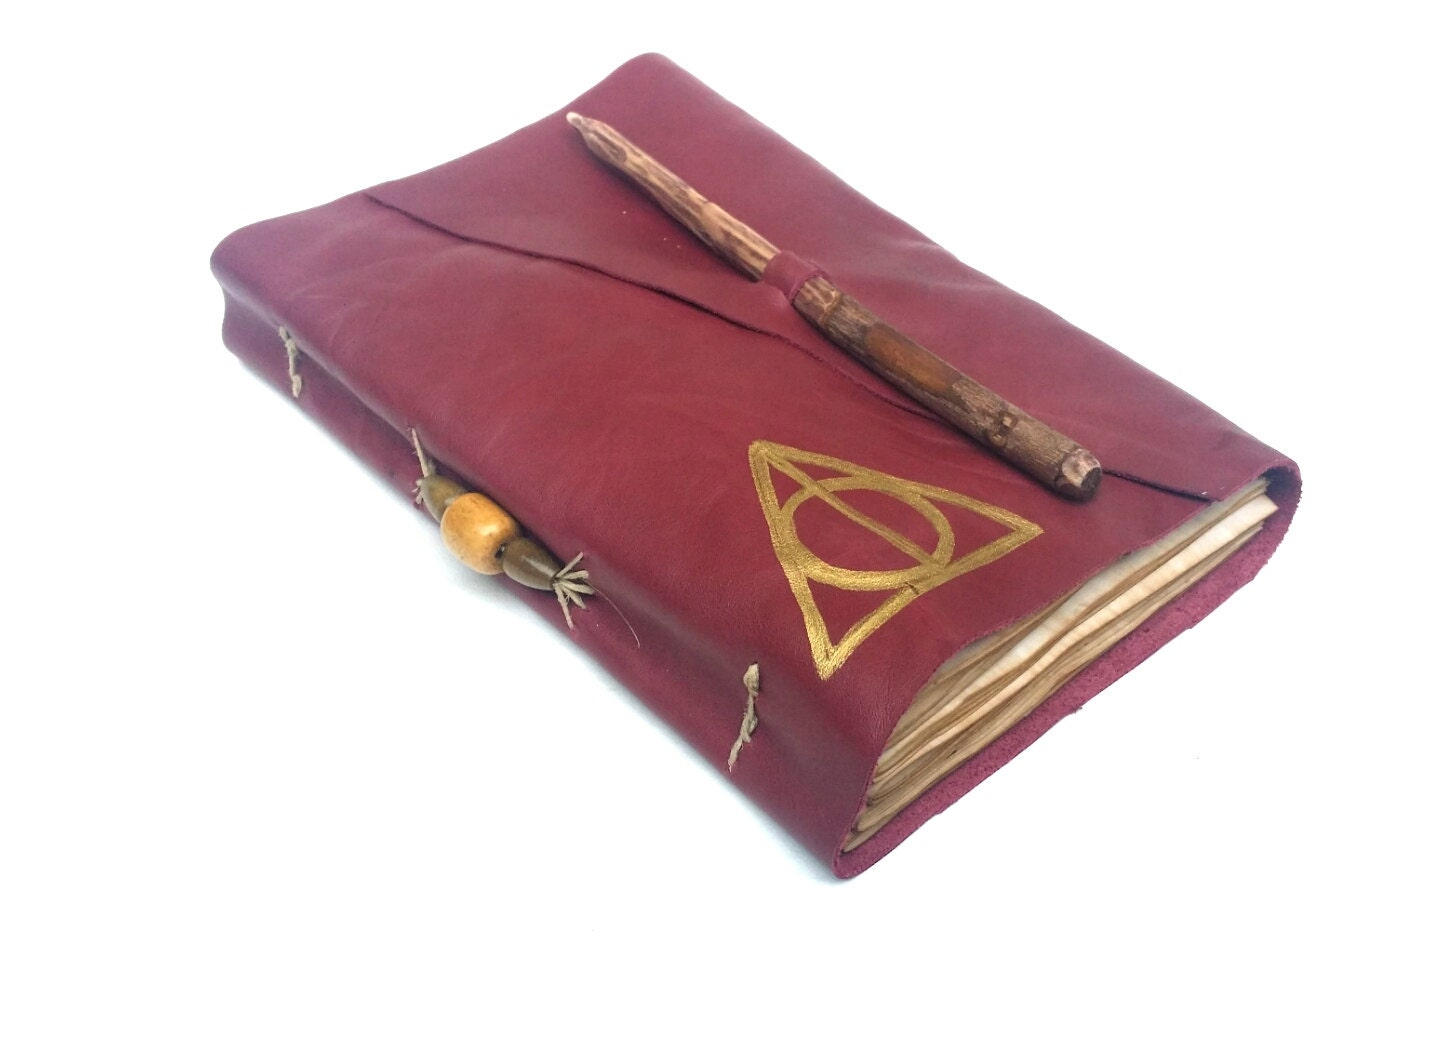 Harry Potter Book Leather Cover : Deathly hallows harry potter leather journal with by